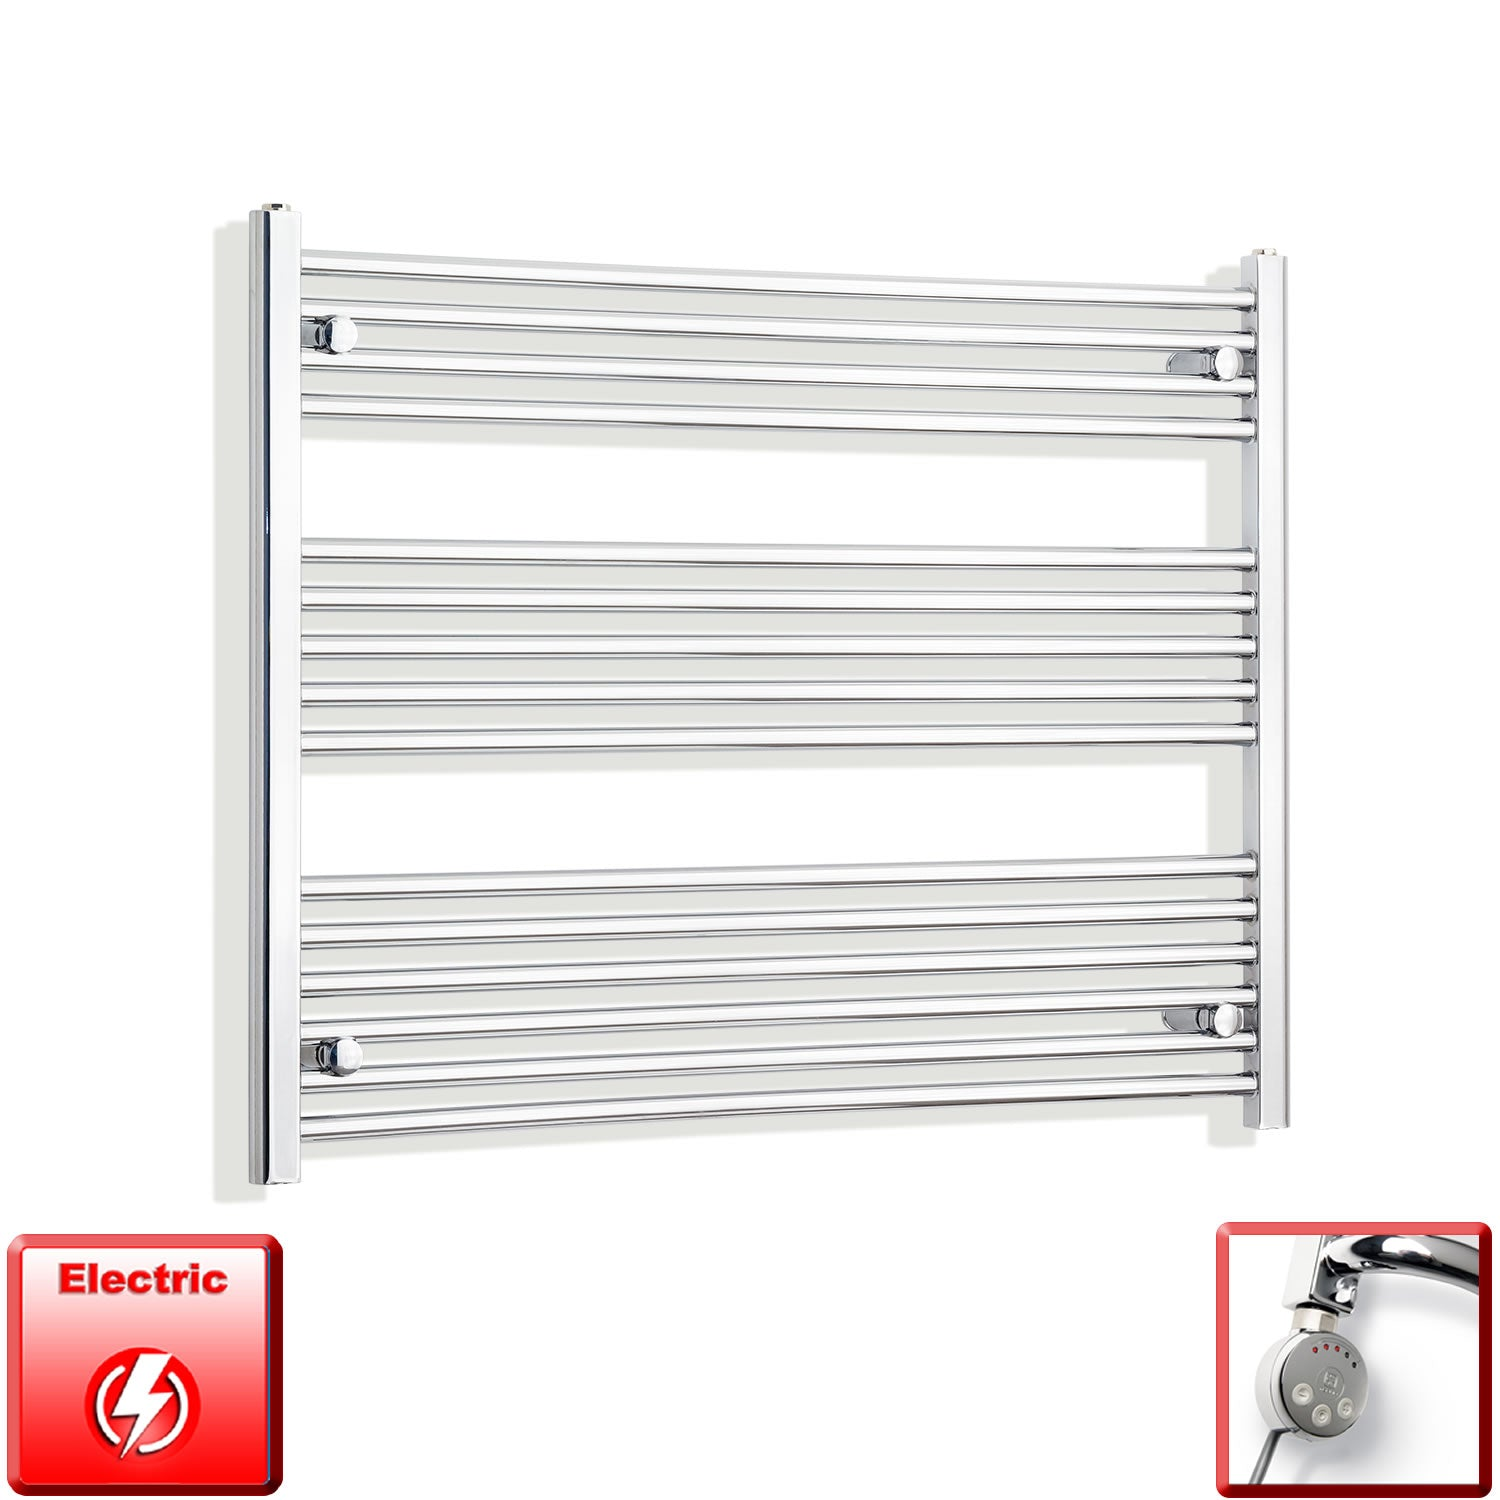 1000mm Wide 800mm High Pre-Filled Chrome Electric Towel Rail Radiator With Thermostatic MEG Element